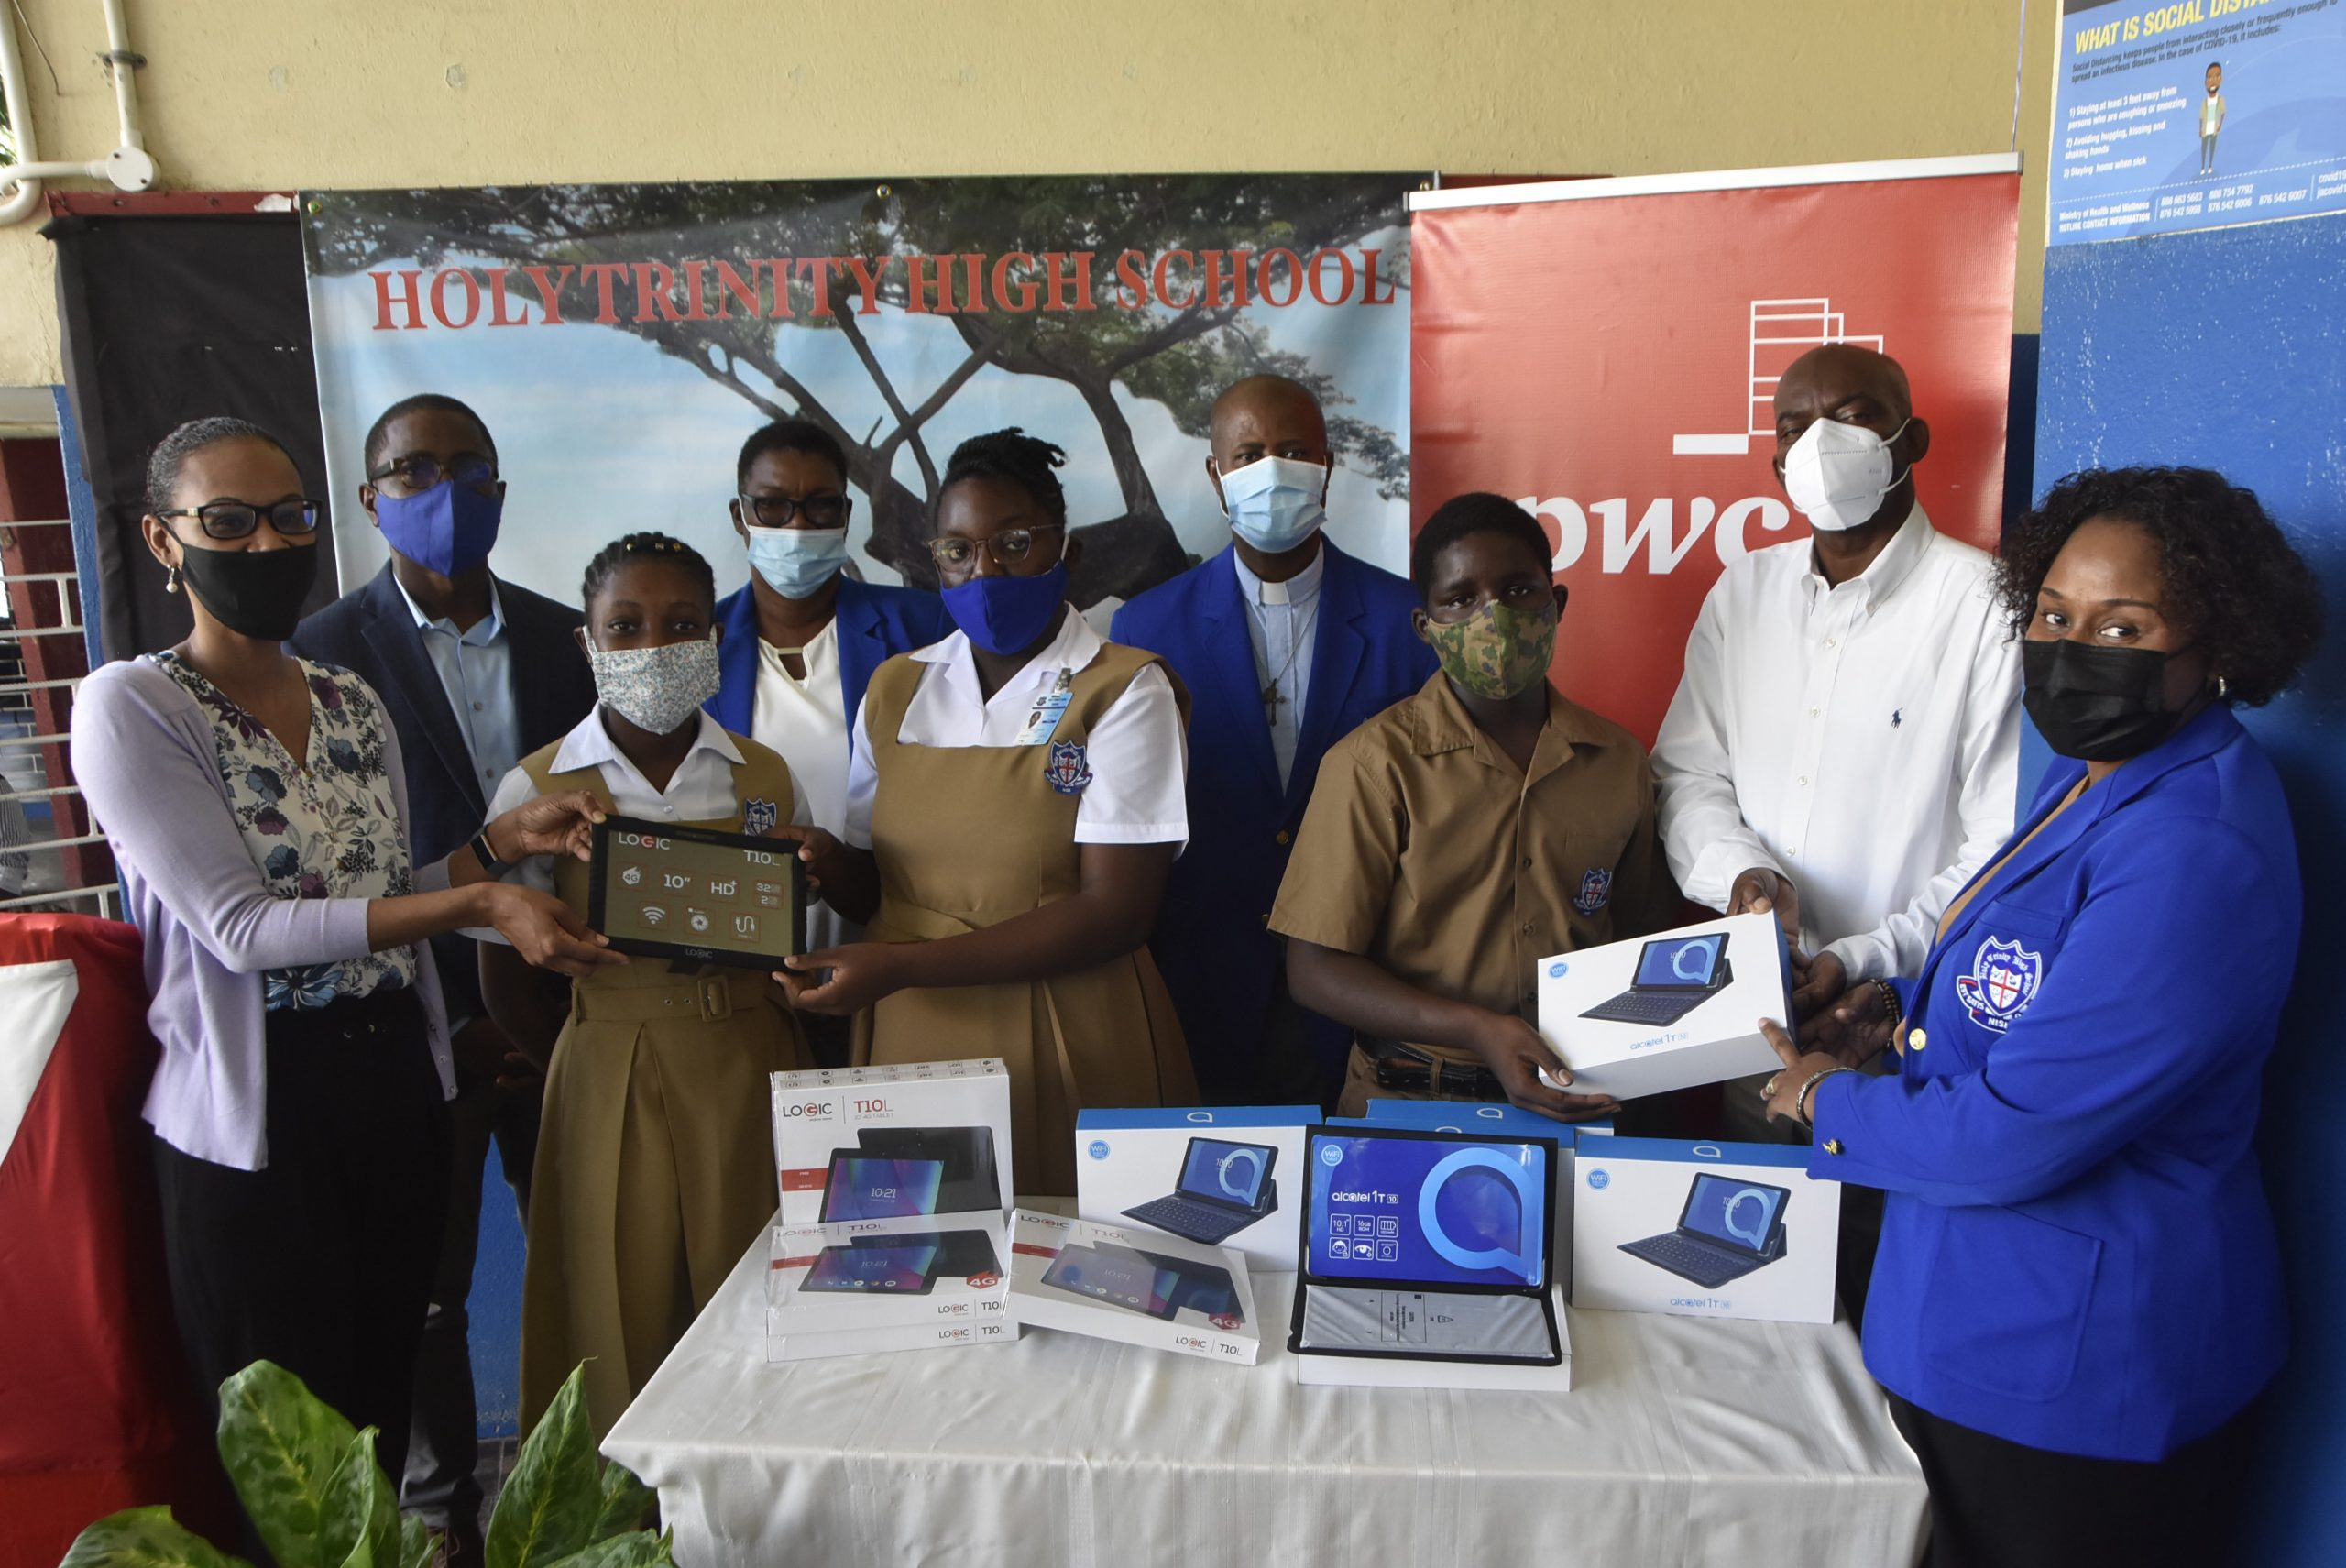 PwC Jamaica Donates 40 tablets to Holy Trinity High School